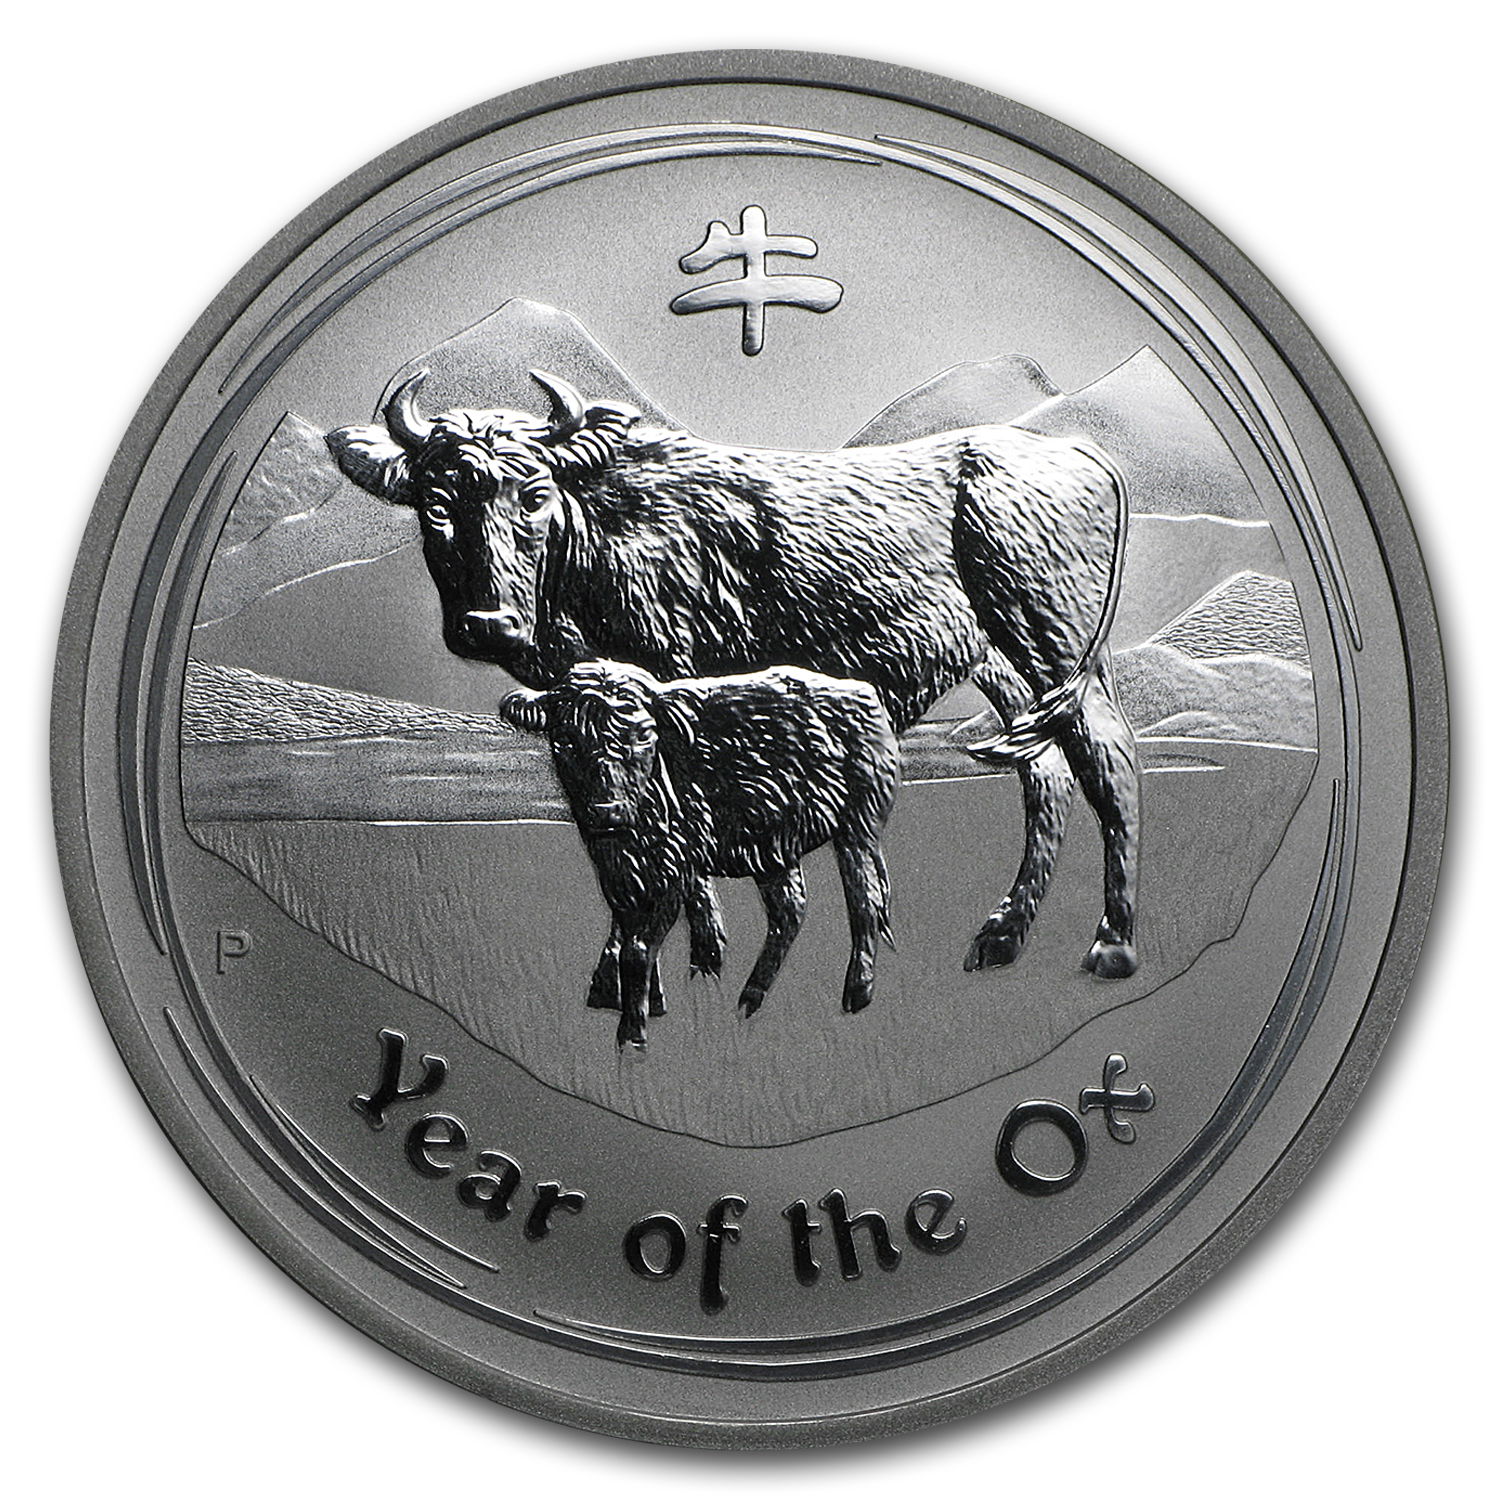 2009 Australia 1 oz Silver Year of the Ox BU (Series I)